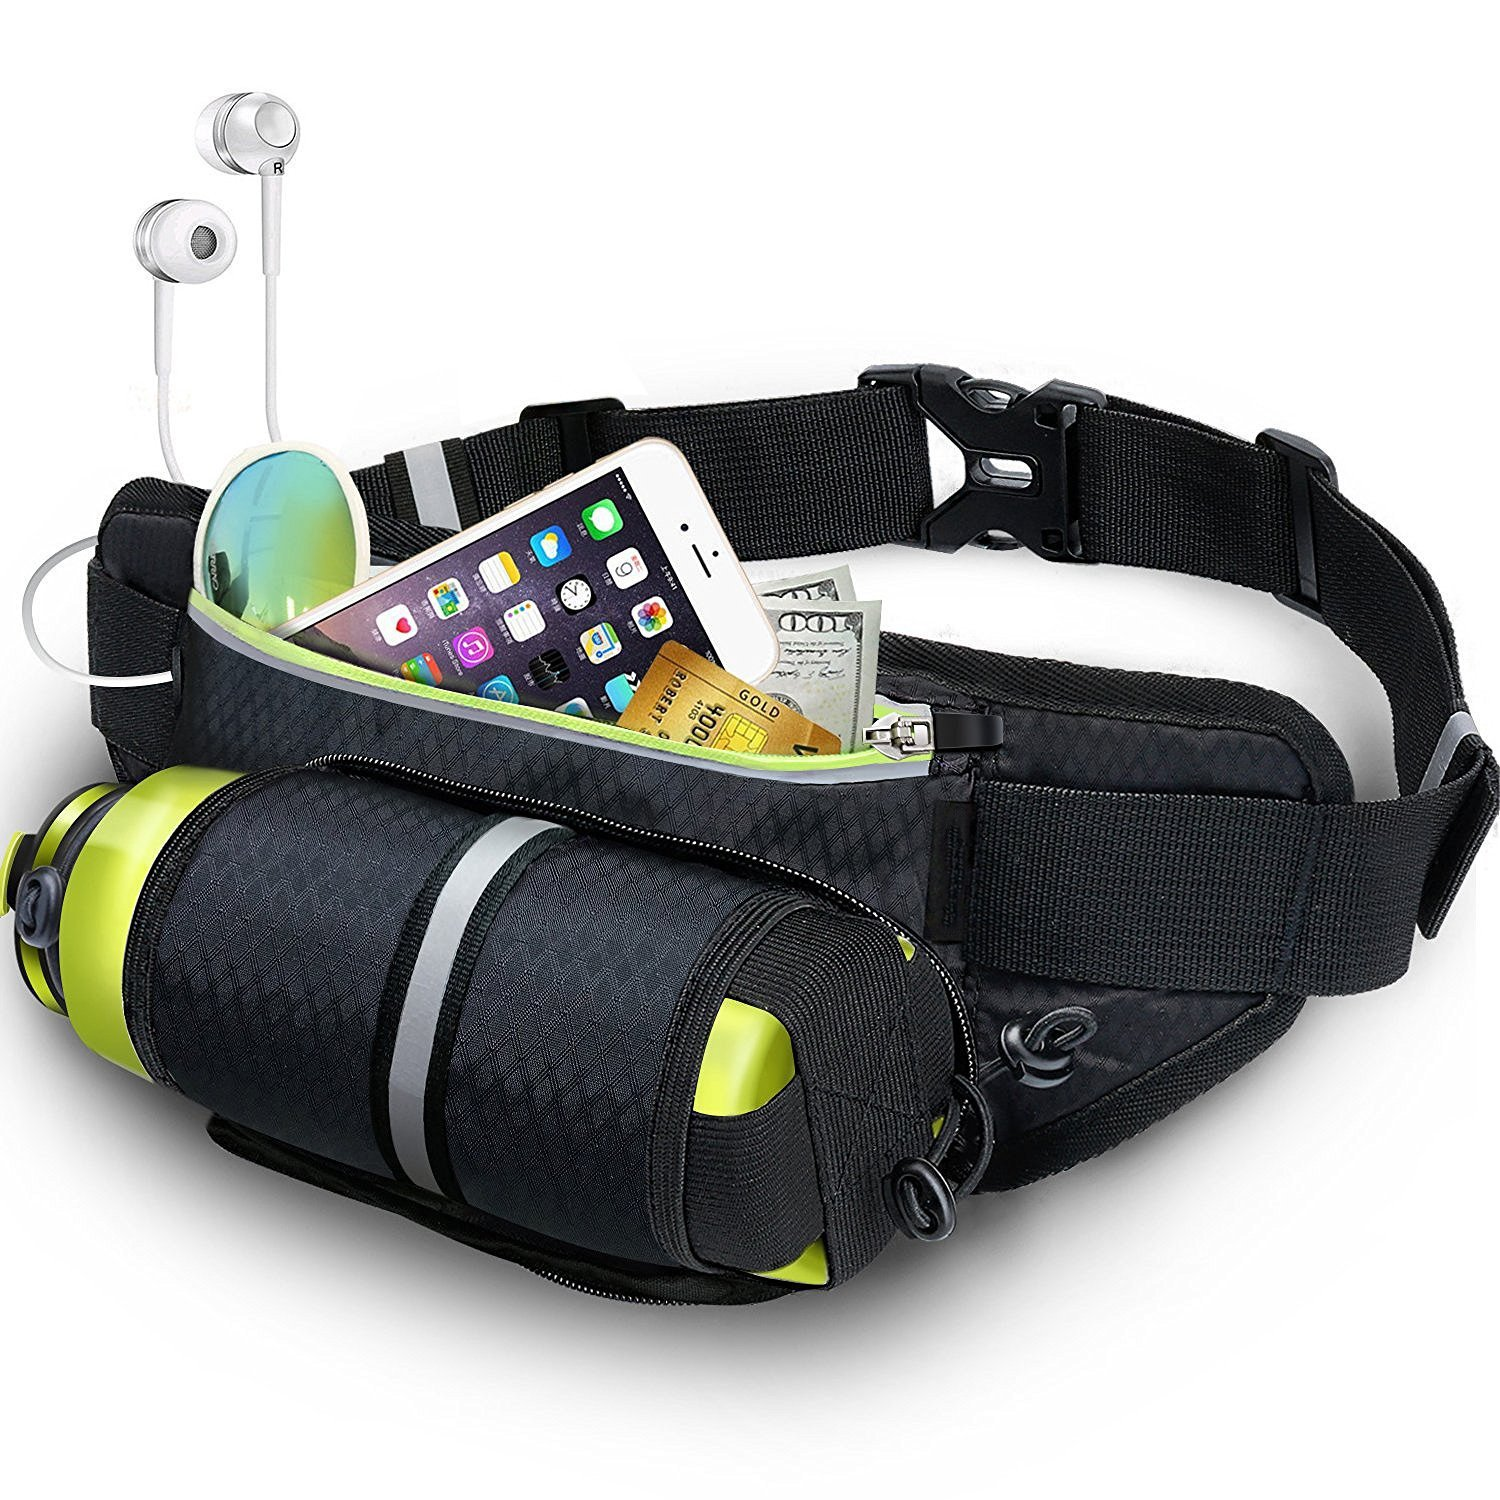 Waist Pack with Water Bottle Holder Waterproof Sports Belt for Women Men Outdoors Traveling Hiking Cycling Light Reflection Strip Headphone Slit for iPhone 8plus X Galaxy Cards Keys by HomeMiYN